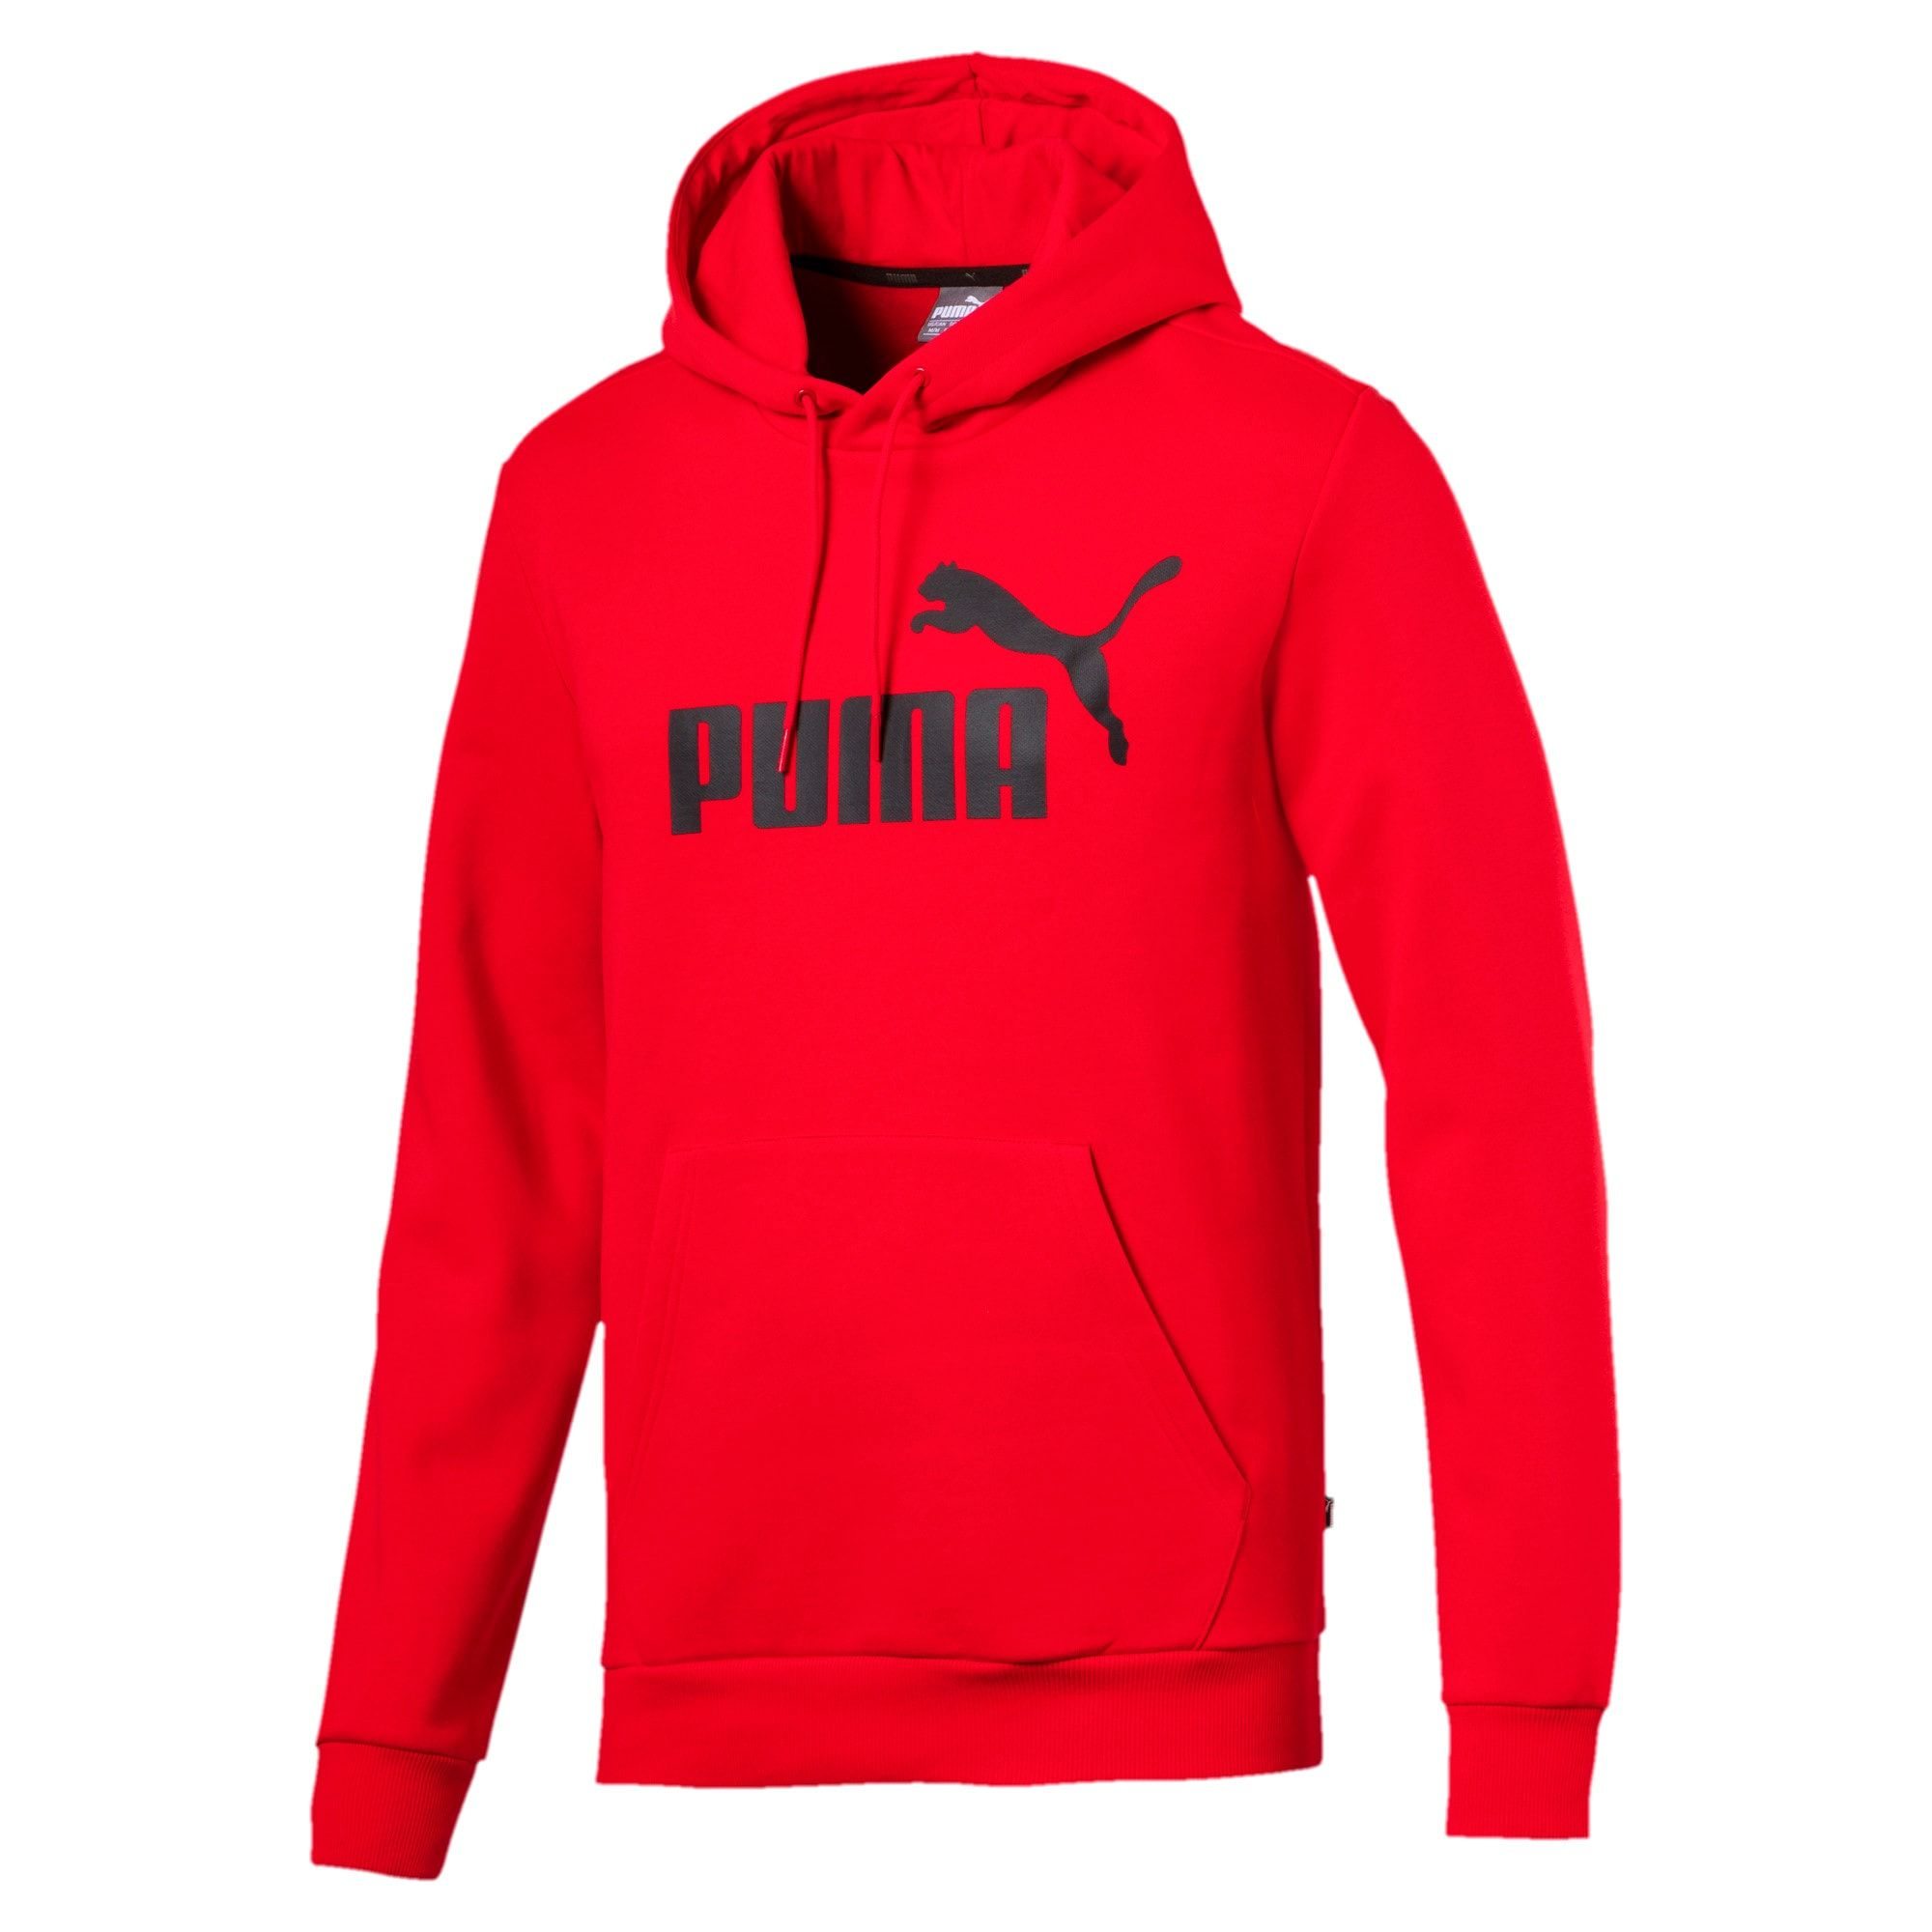 Essentials Fleece Men's Hoodie in 2020 | Hoodies, Puma mens ...